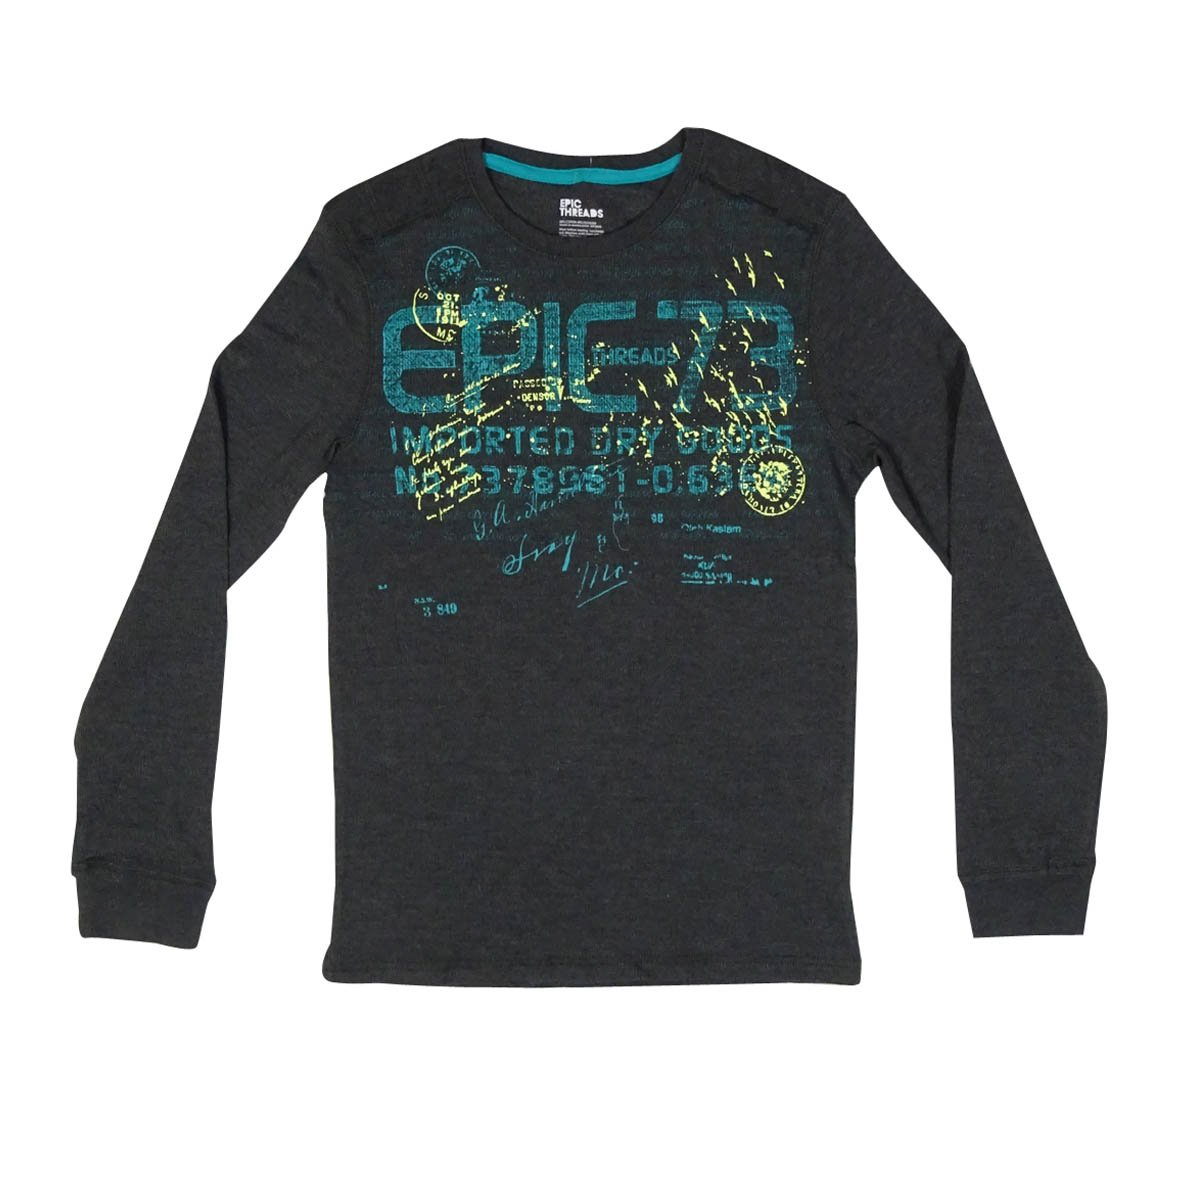 Epic Threads Boys' 'Epic 73' Printed Thermal Shirt (L, Charcoal Heather)